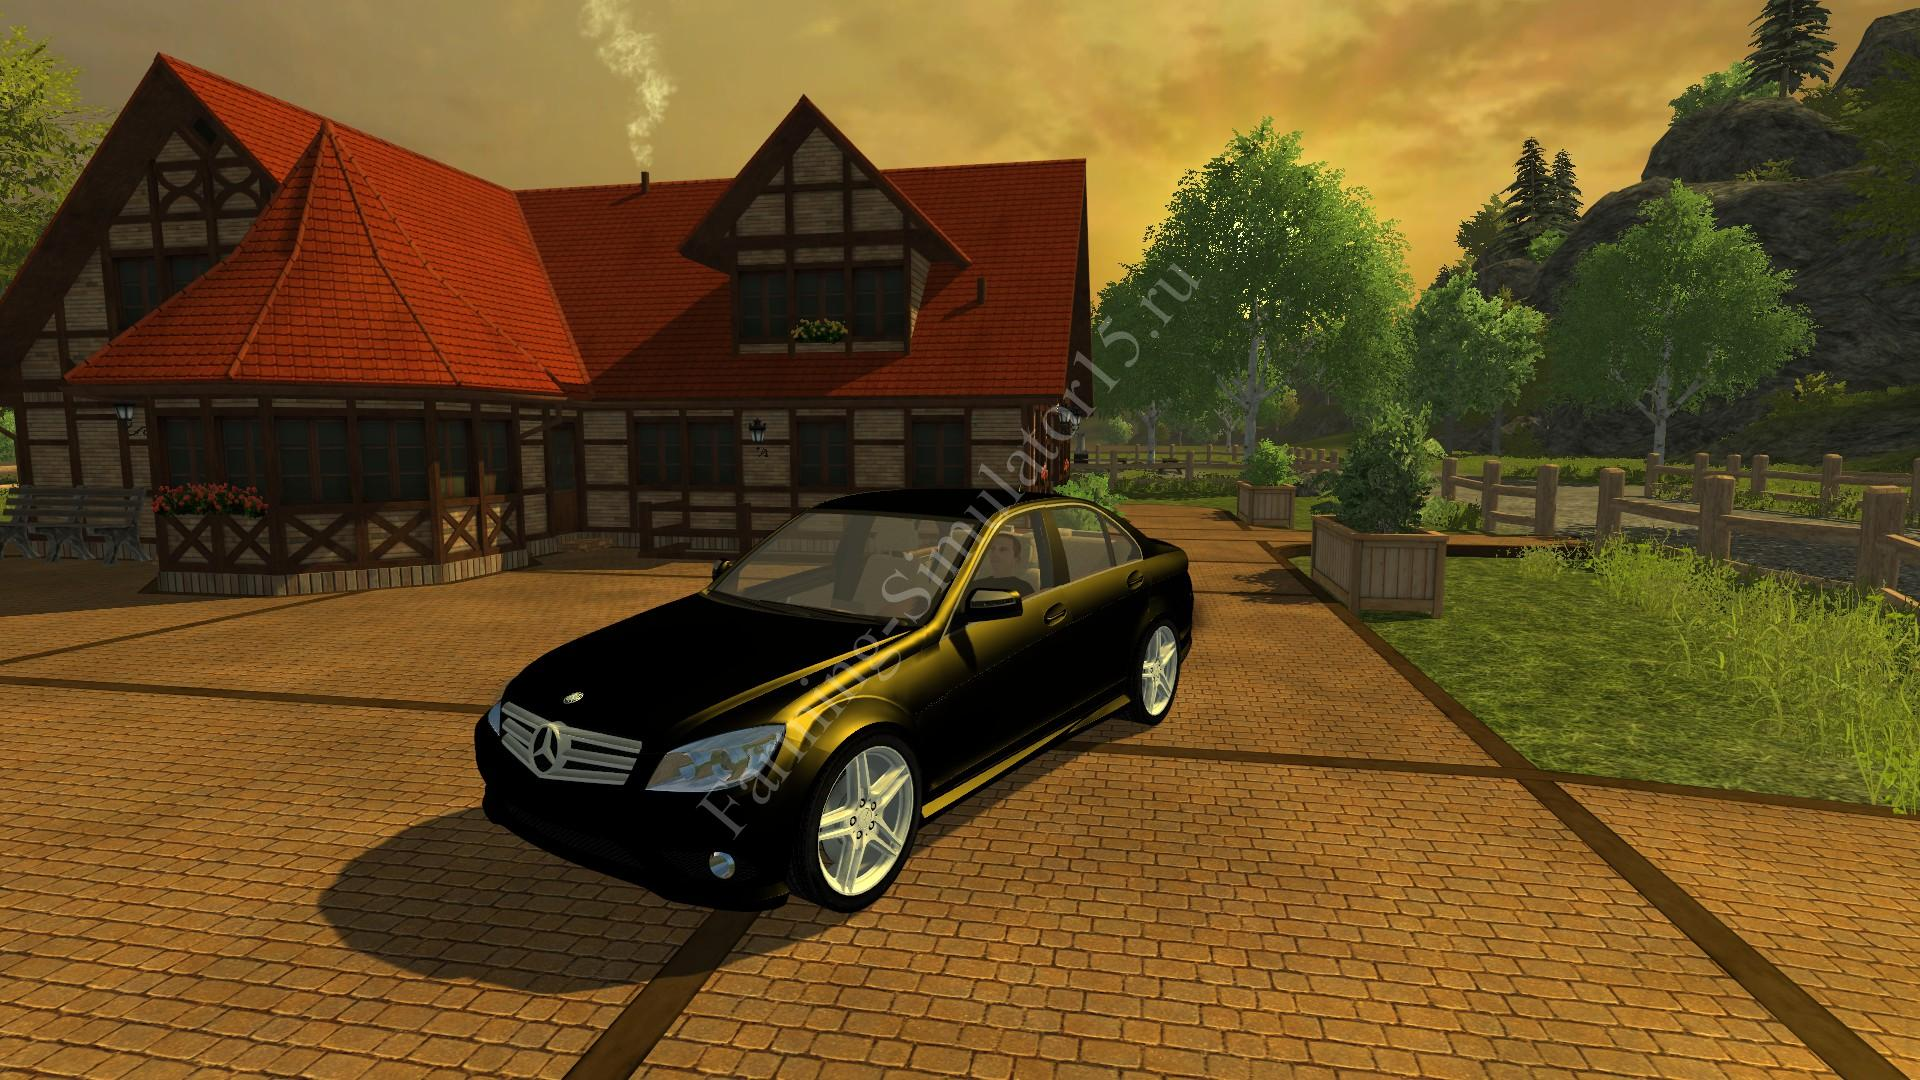 Мод легкового авто Mercedes Benz C350 v 1.0 Black More Realistic Farming Simulator 2013, Farming Simulator 13